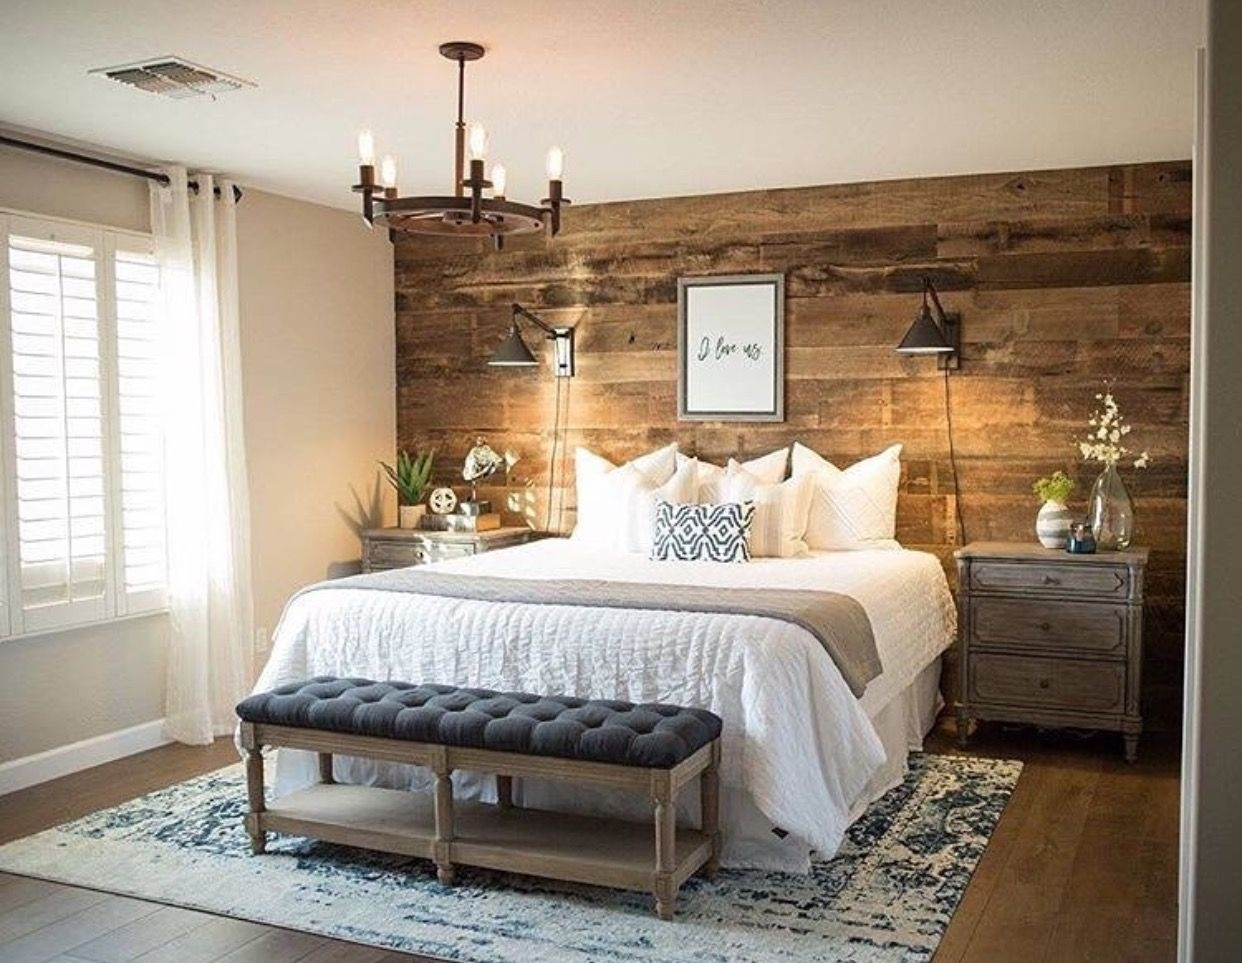 Pinamy Harbaugh On Bedroom Ideas | Pinterest | Walls, Bedrooms Intended For Most Up To Date Earth Tones Wall Accents (View 12 of 15)